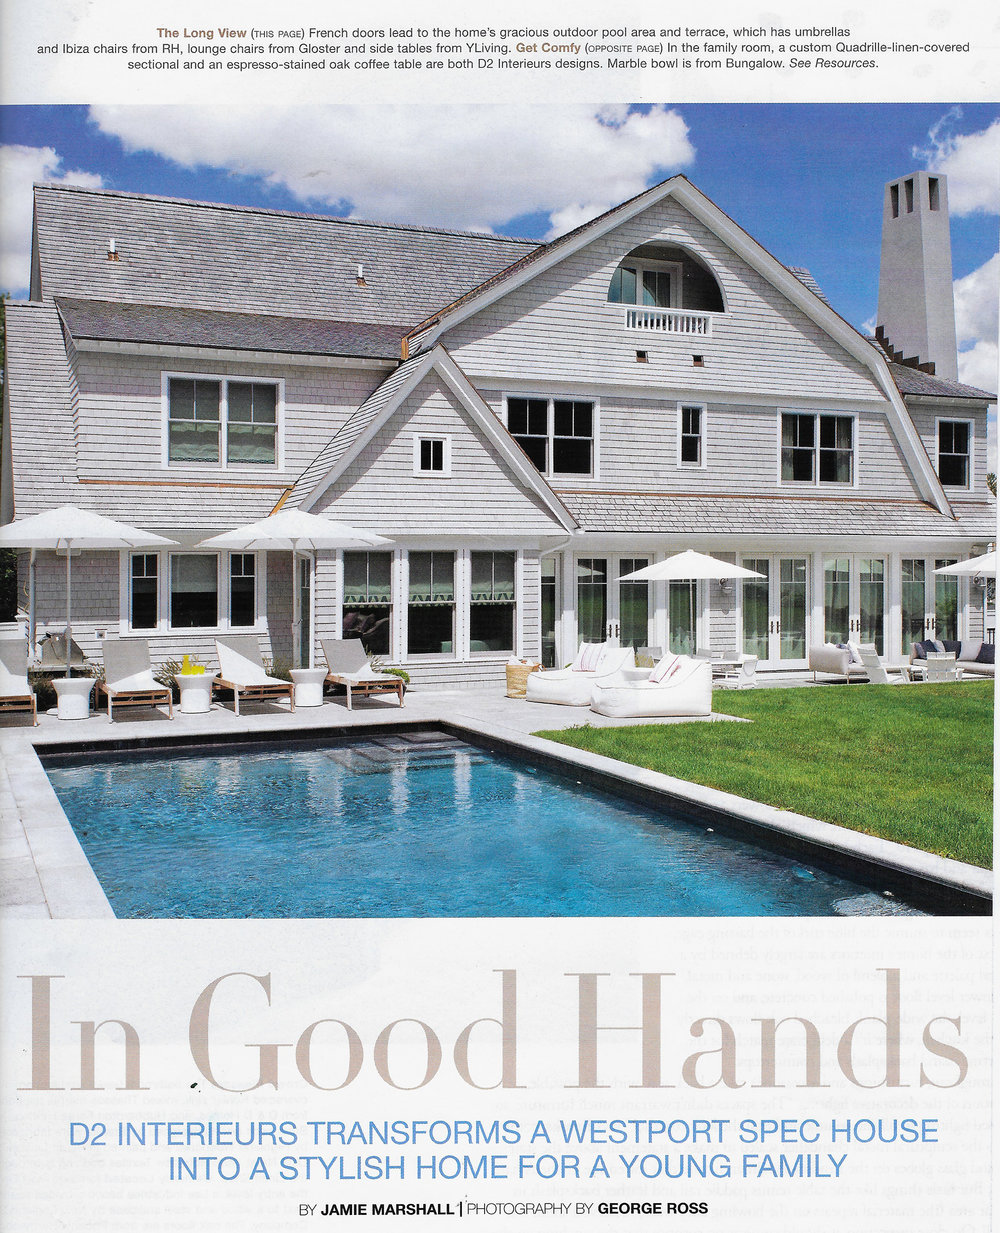 ct-cottages-gardens-good-hands-1